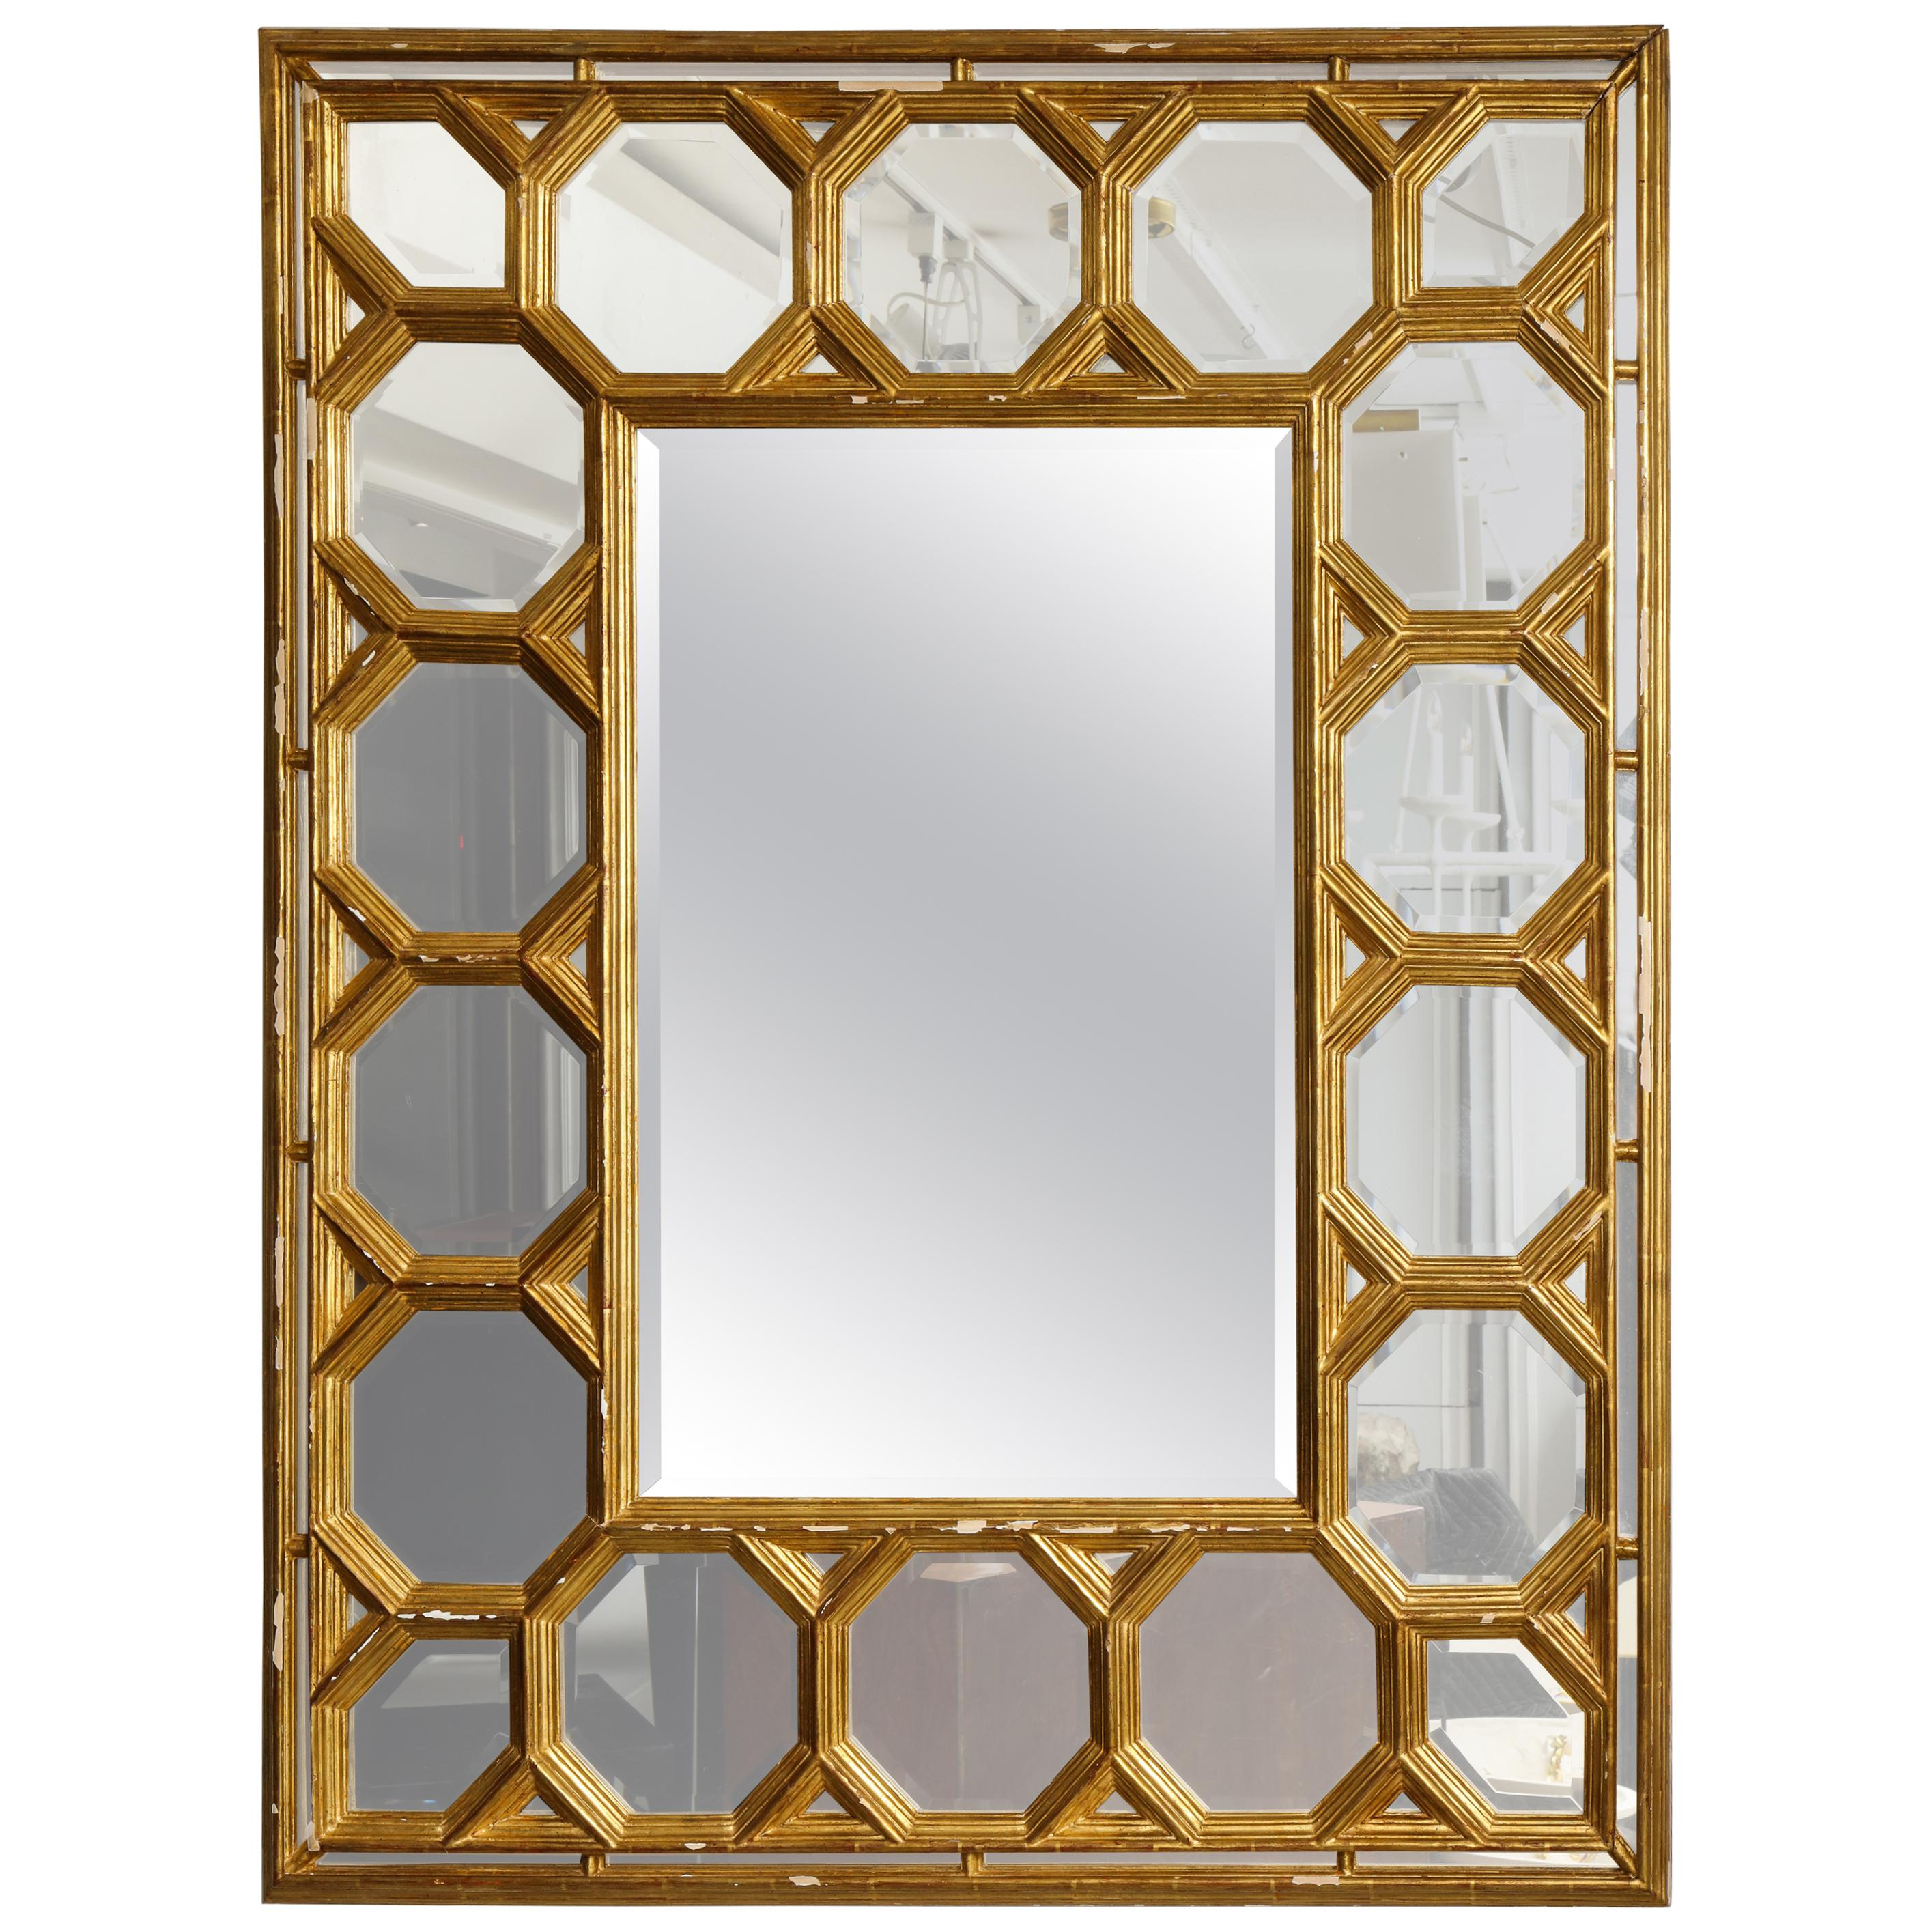 Sun Shaped Mirrors Italy Mirrors 3 528 For Sale At 1stdibs